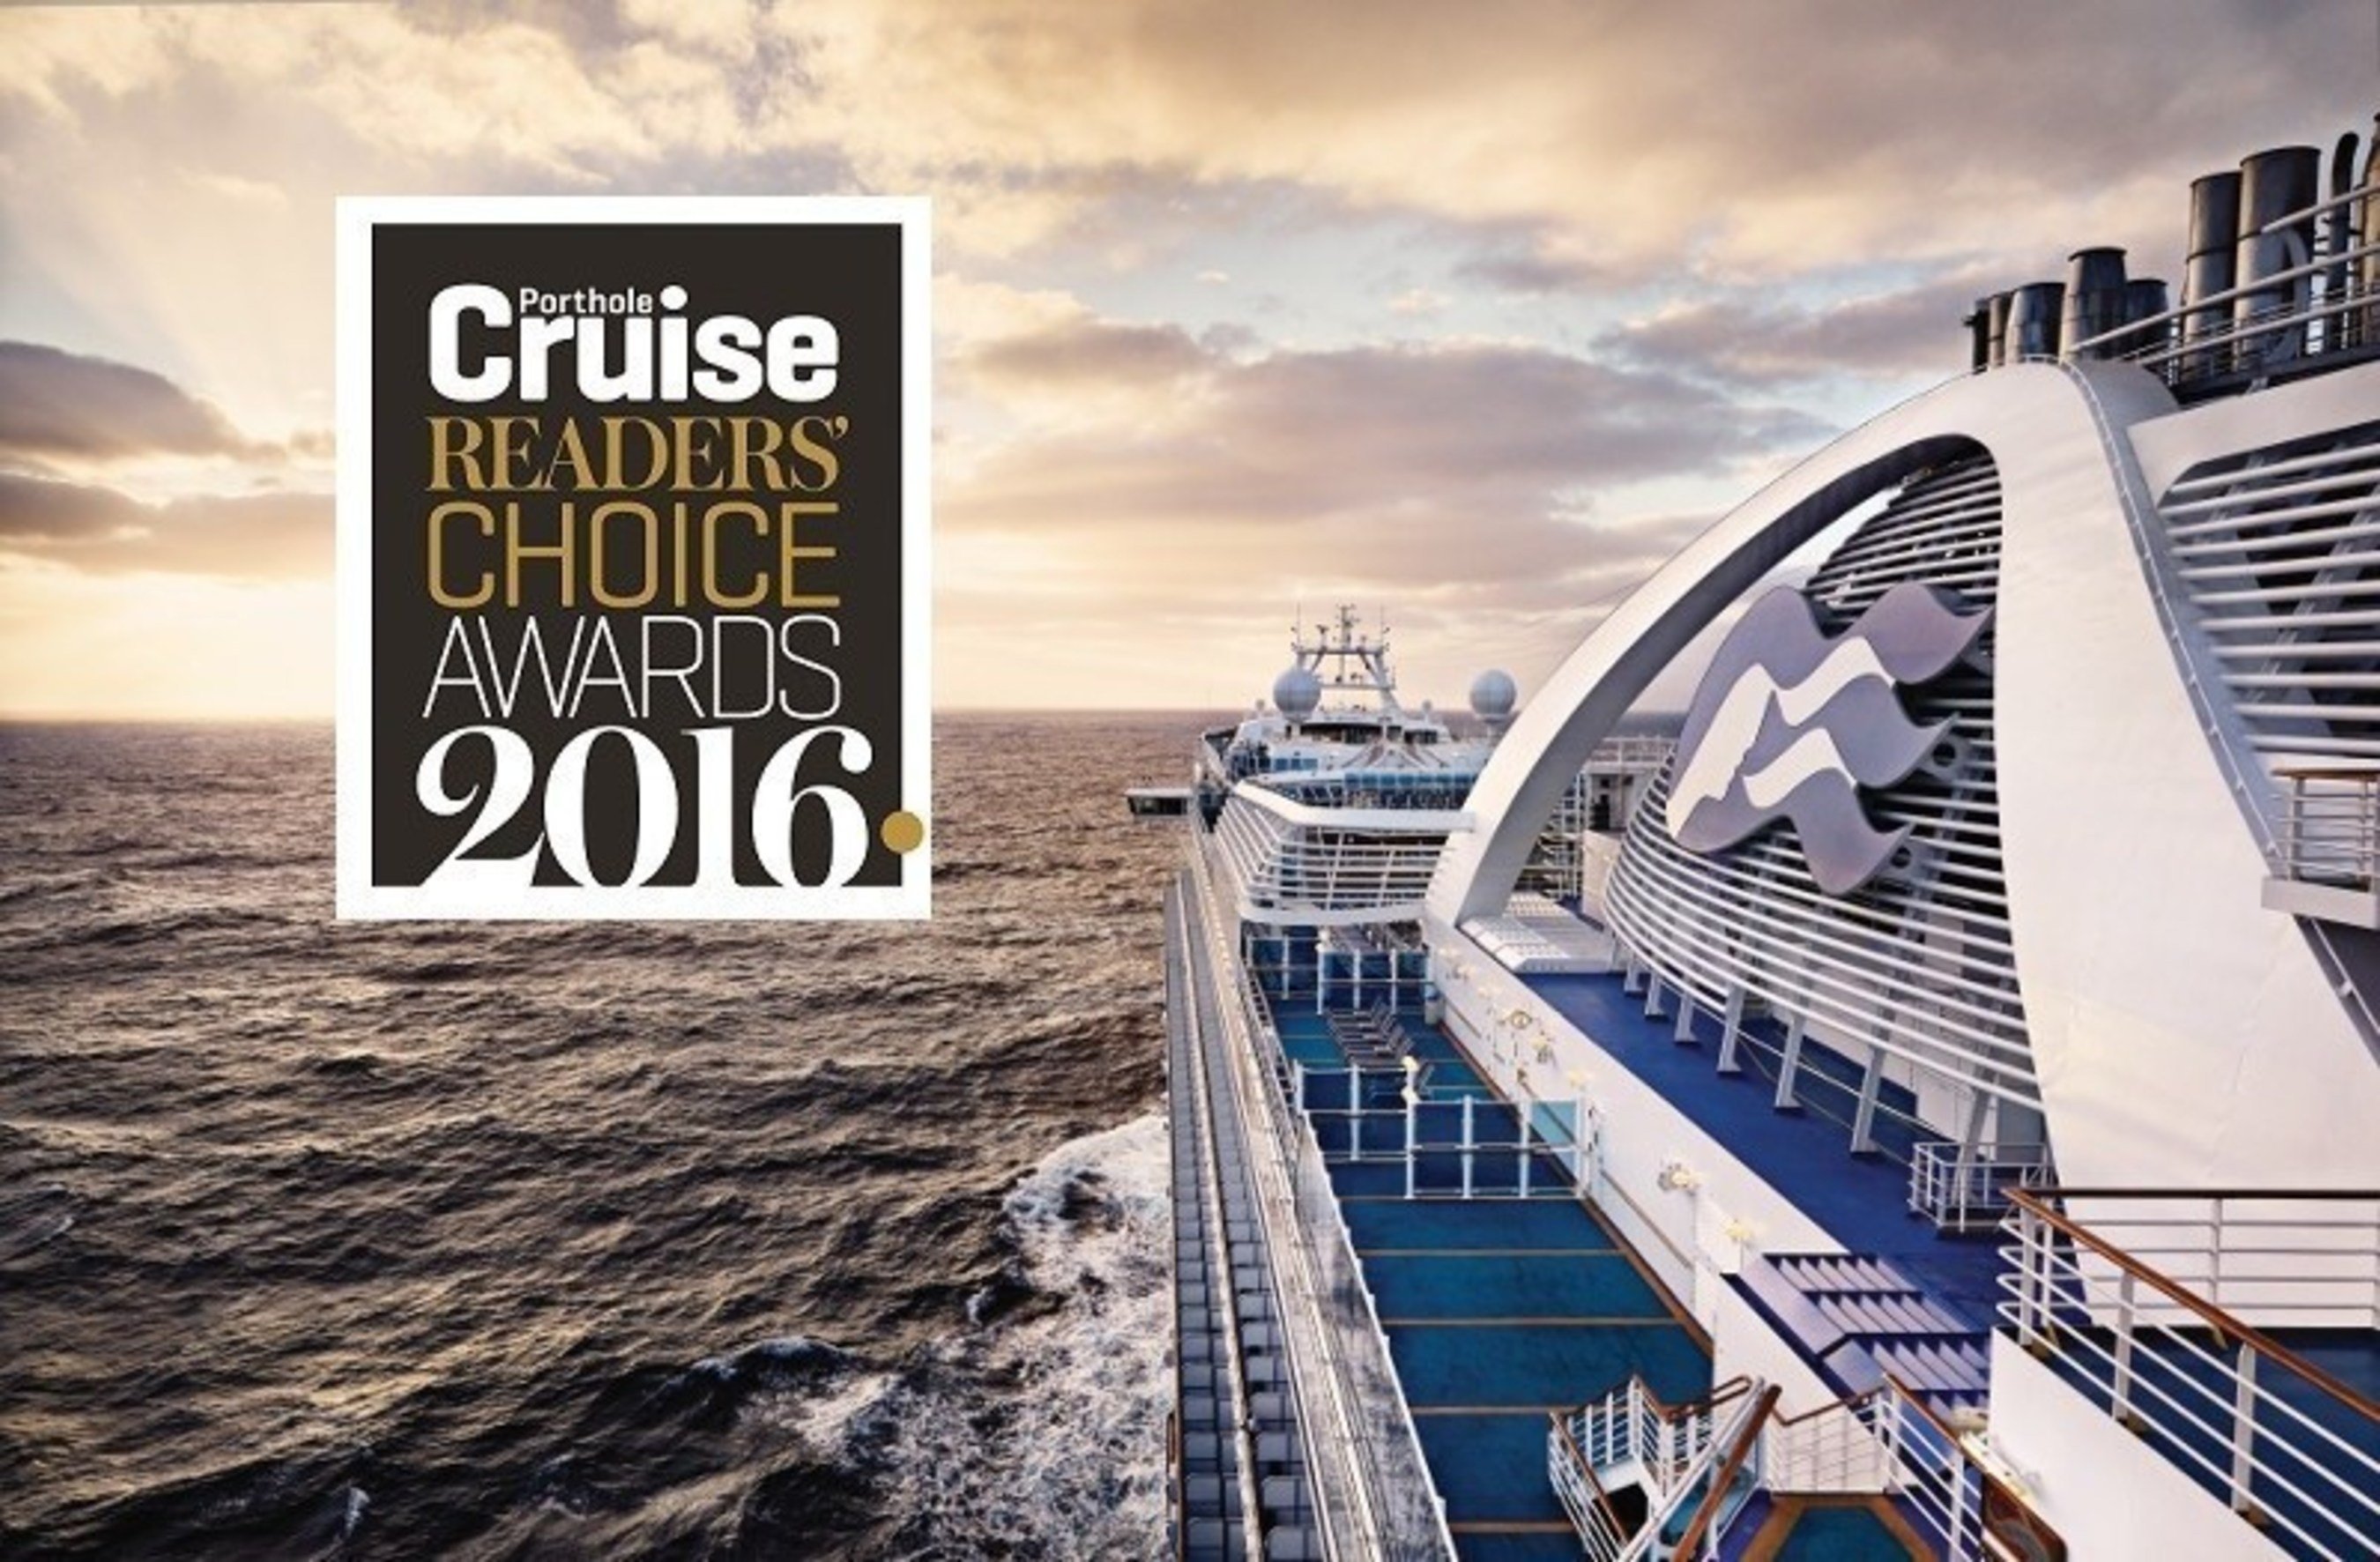 Princess Cruises Honored with Four Porthole Readers' Choice Awards